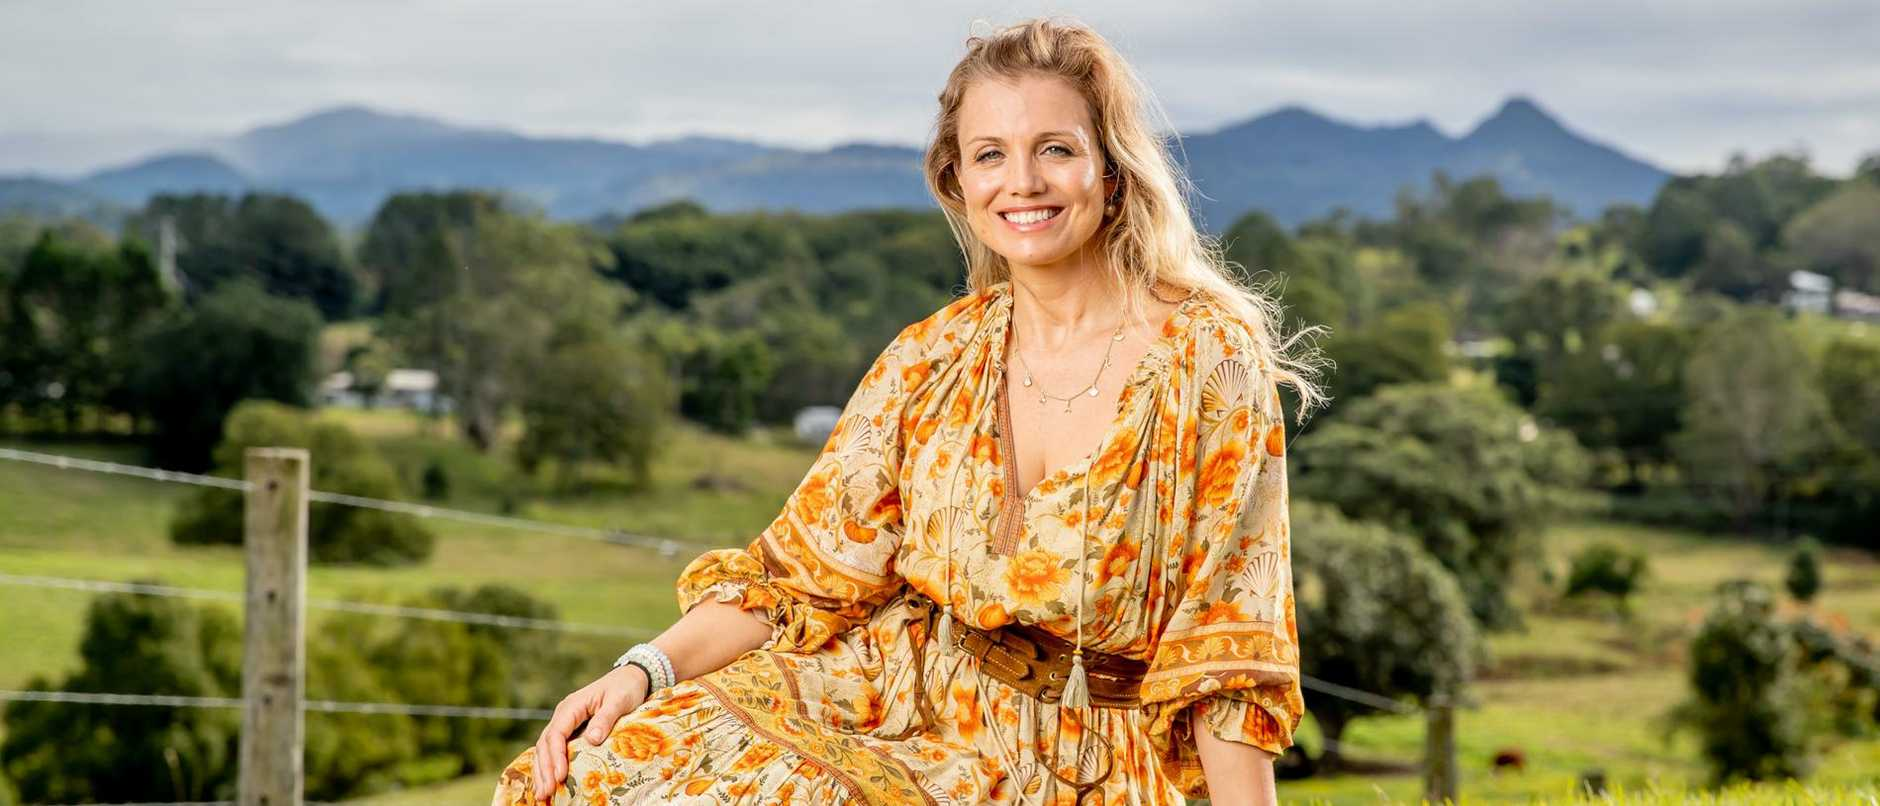 McLeod's Daughters leading lady Jane Smith revealed a bold plan for 2020 and said playing Tess Silverwater in the Australian bush changed her life forever.